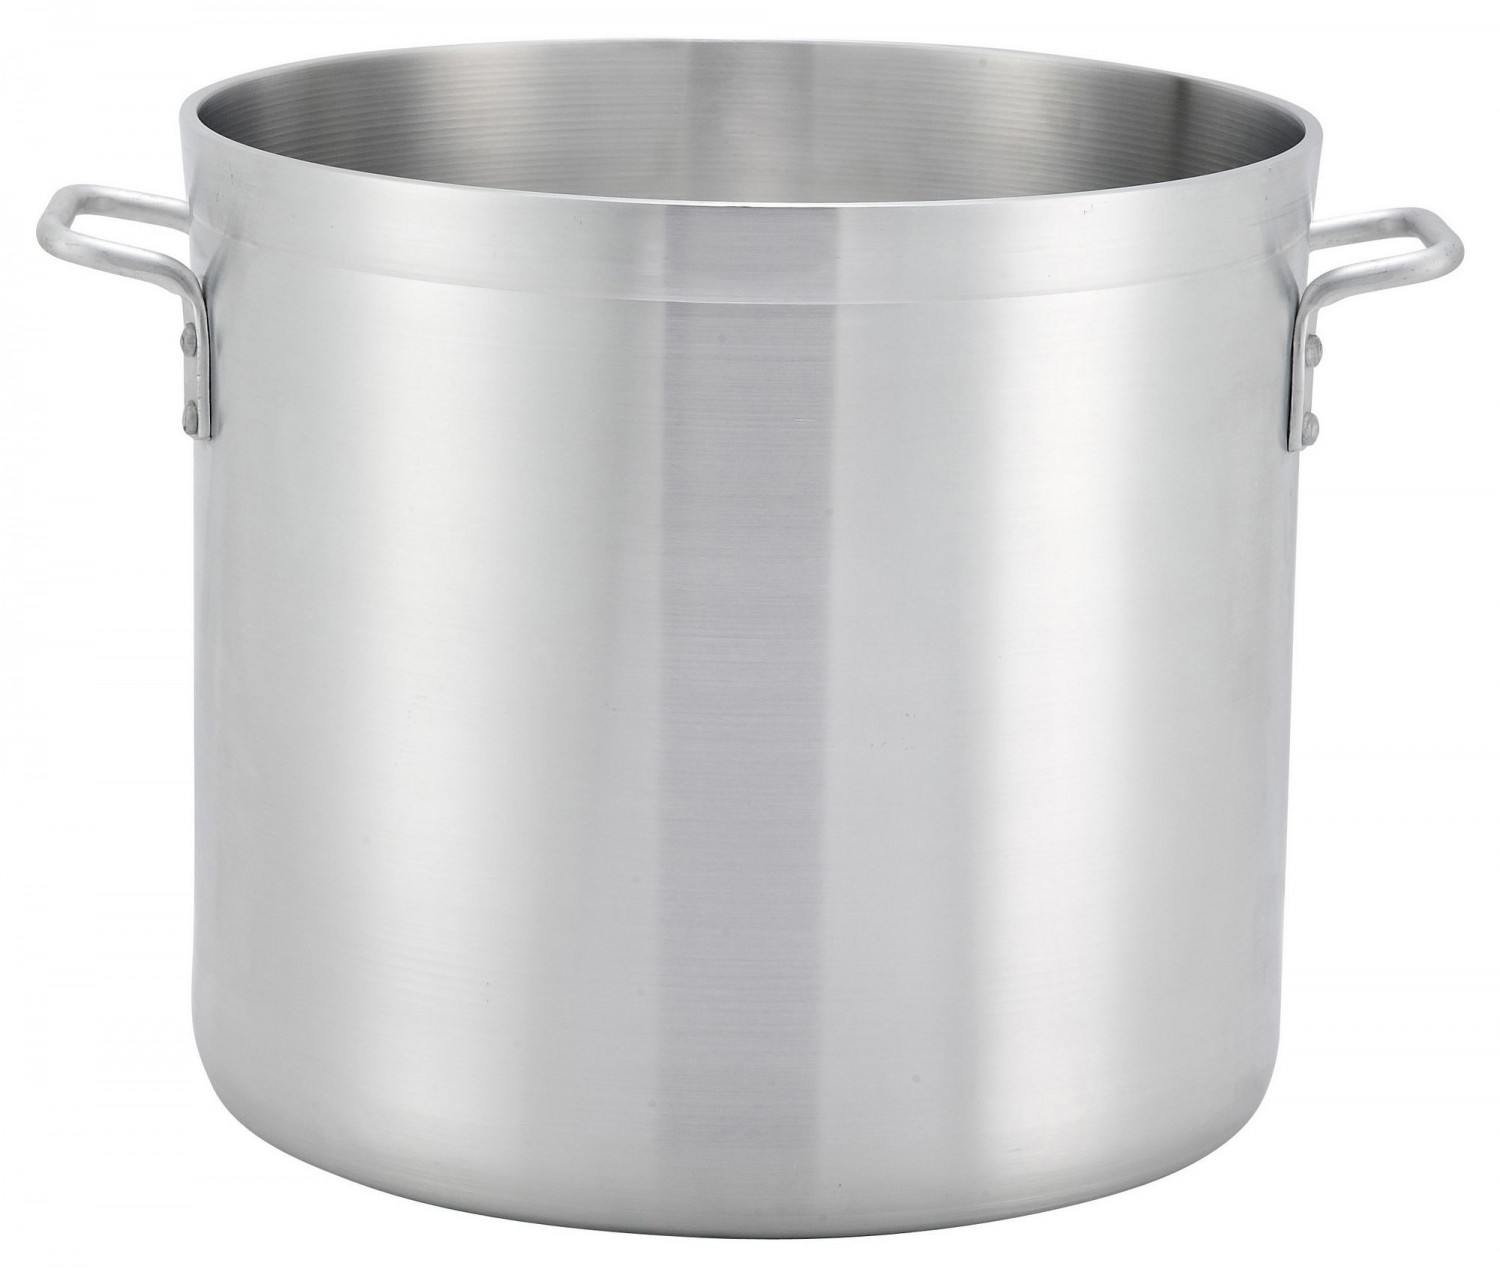 Winco ALHP-160 Precision Aluminum Stock Pot 160 Qt.